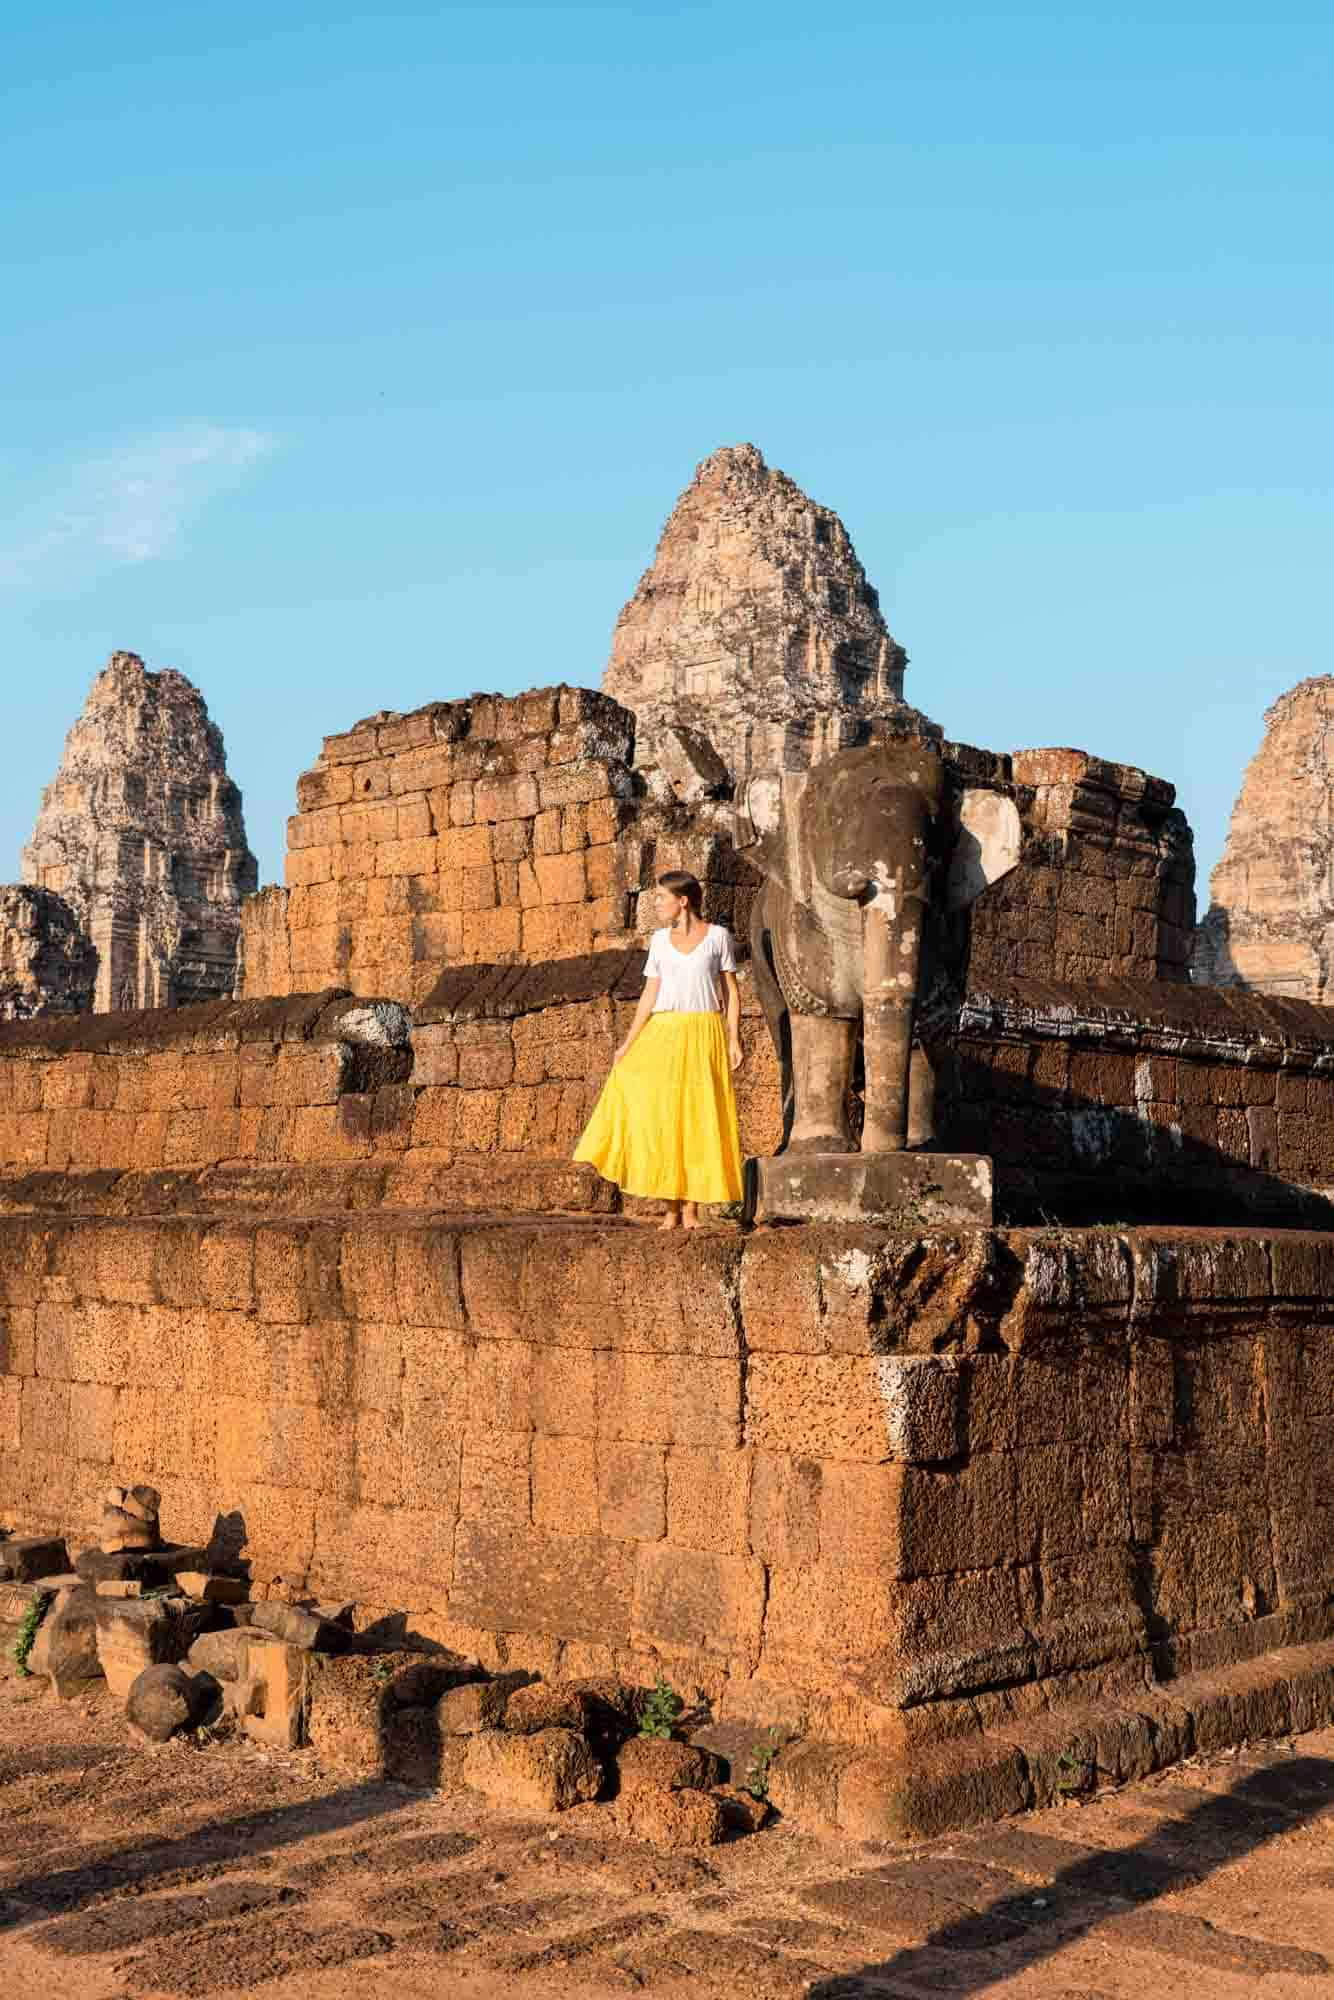 A girl standing next to an elephant sculpture at East Mebon temple Angkor Wat Cambodia